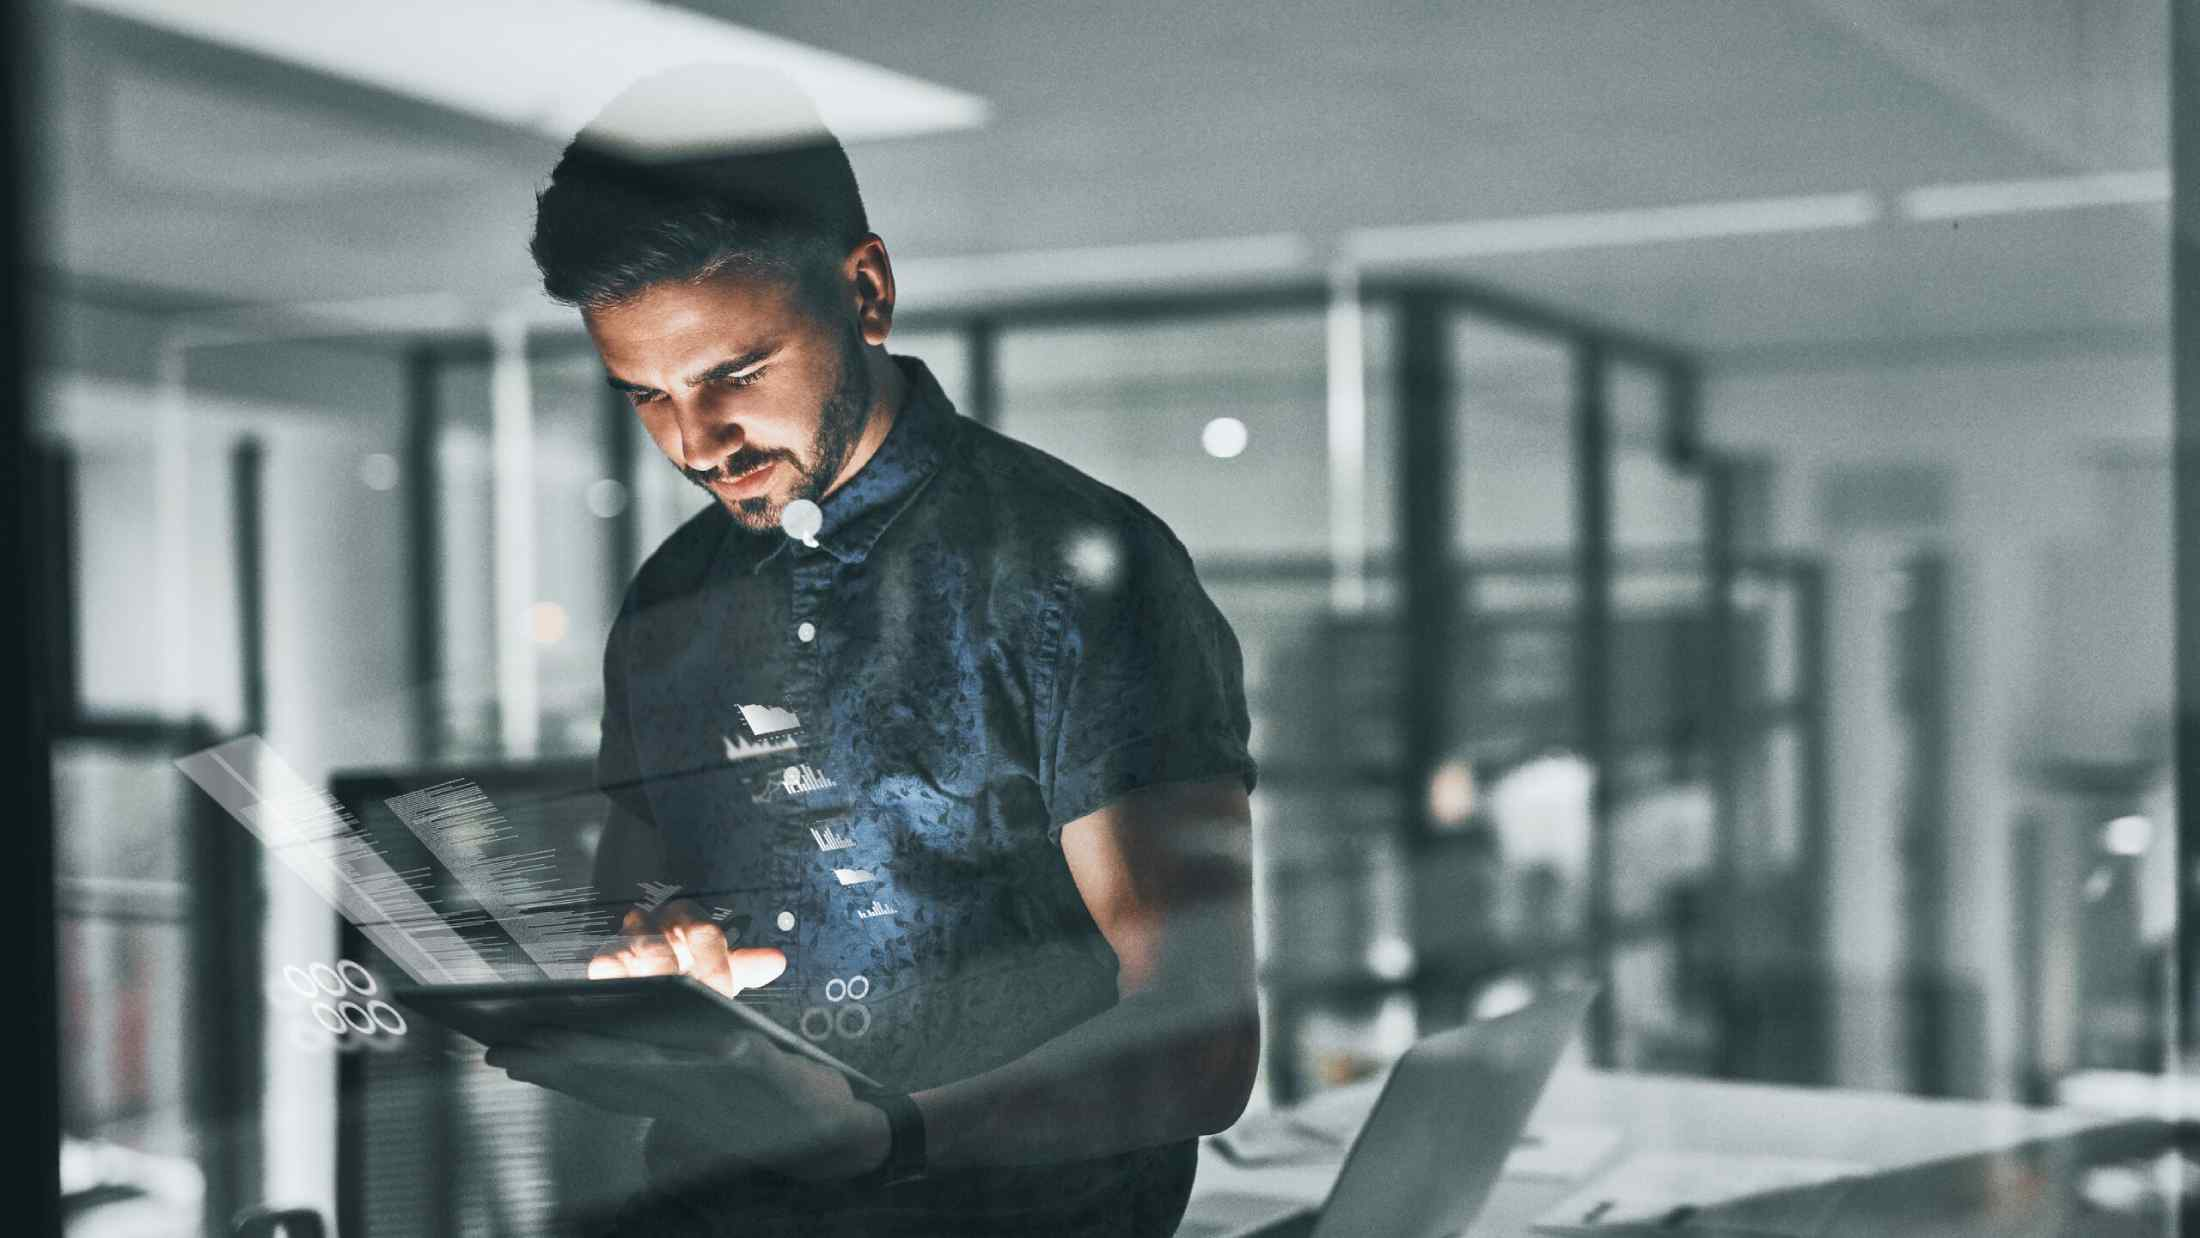 Man working on tablet in office with reflection in window